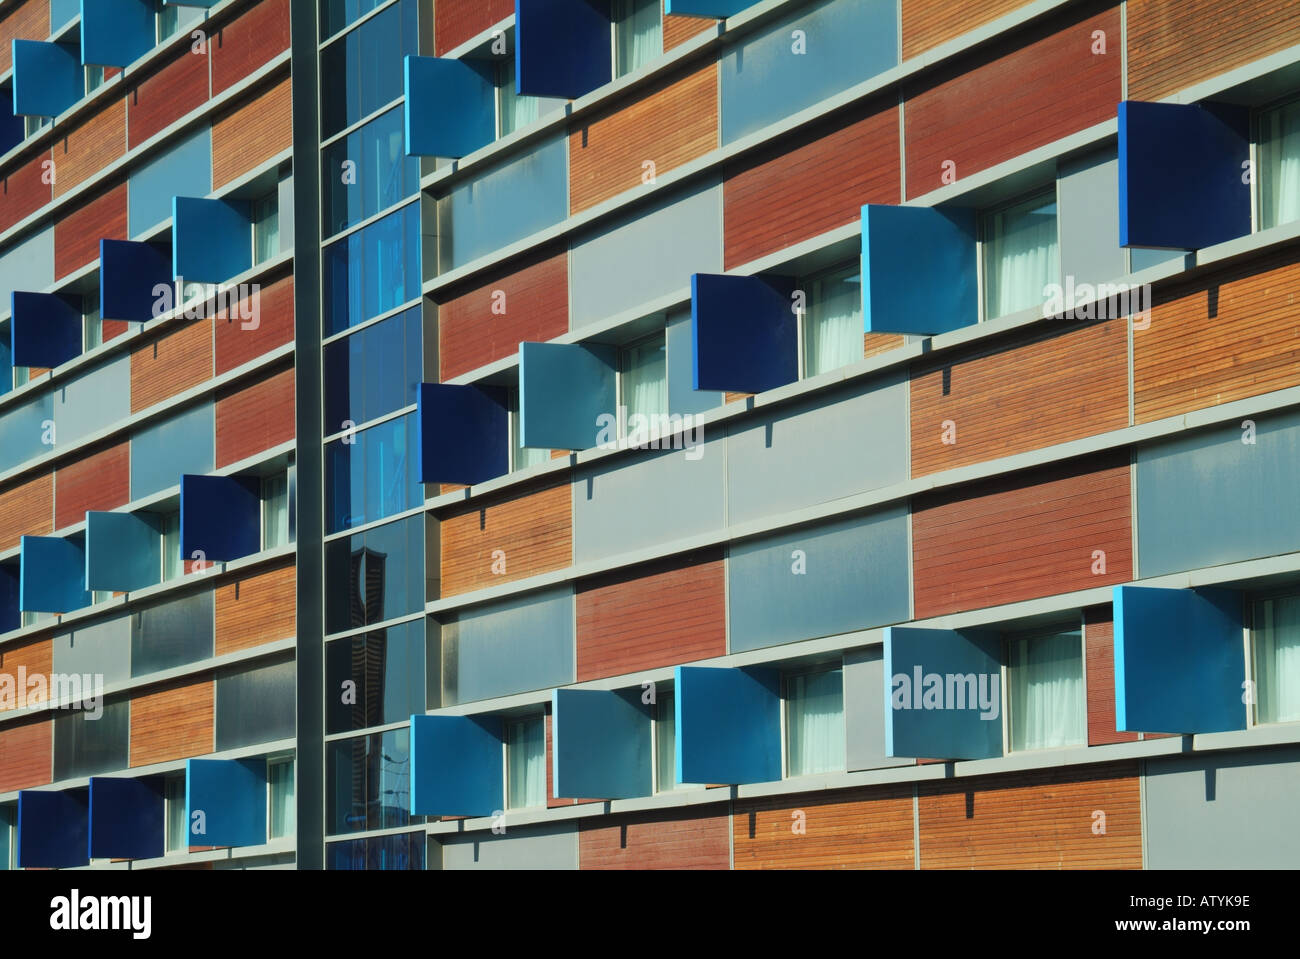 Front Elevation Of Hotel Building : Cambridge travelodge stock photos